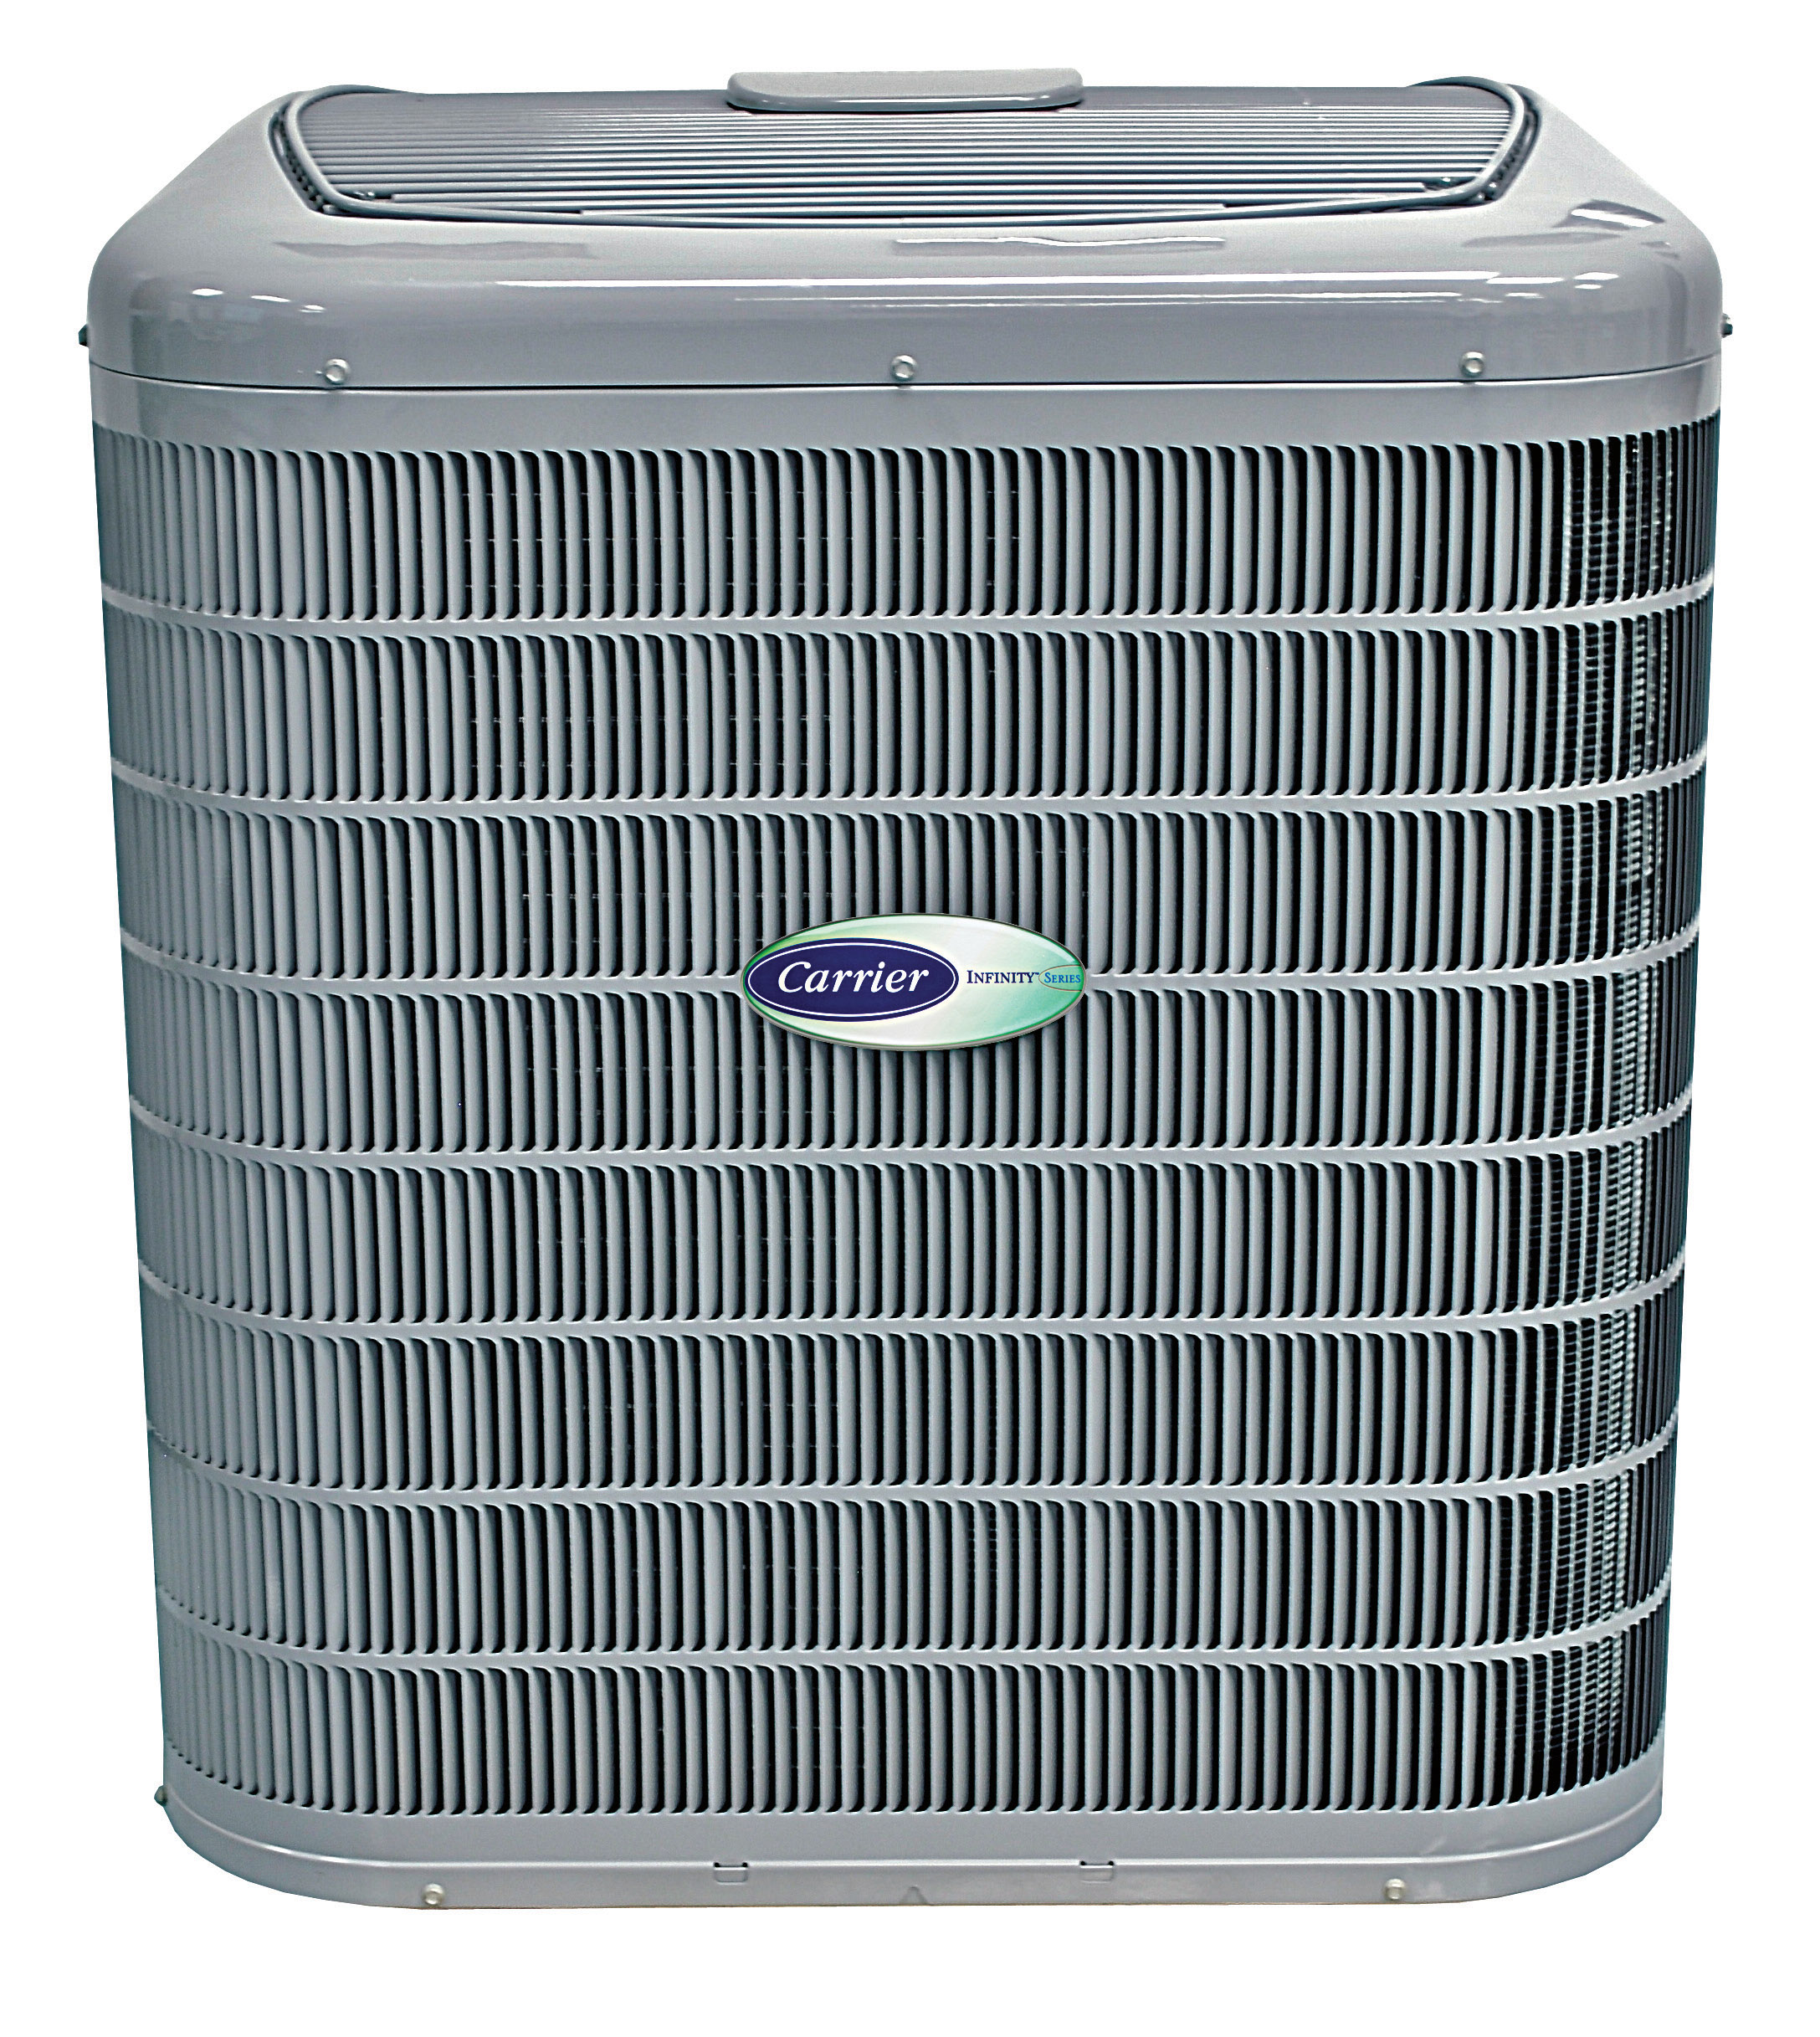 Carrier and bryant recall heat pumps due to fire hazard for Motor for ac unit cost